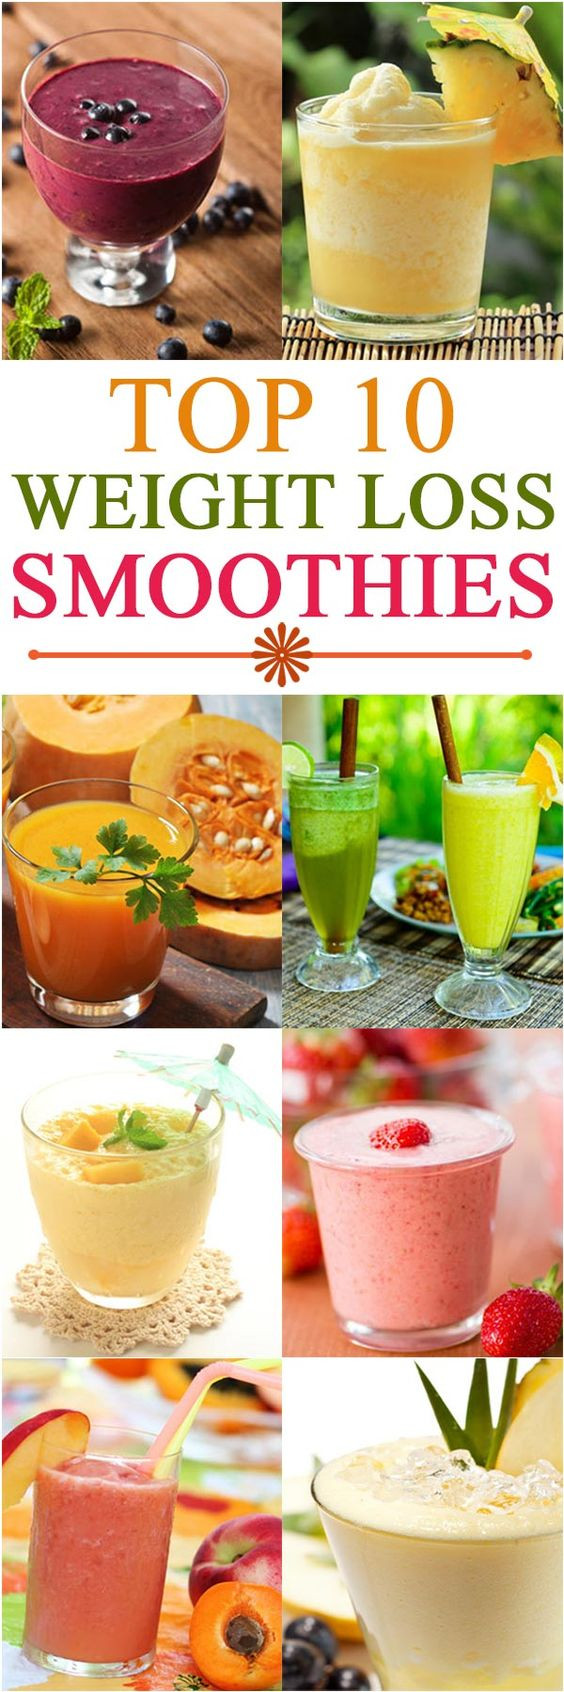 Healthy Fruit And Vegetable Smoothie Recipes For Weight Loss  Your Weight Loss Prescription Make e For Breakfast